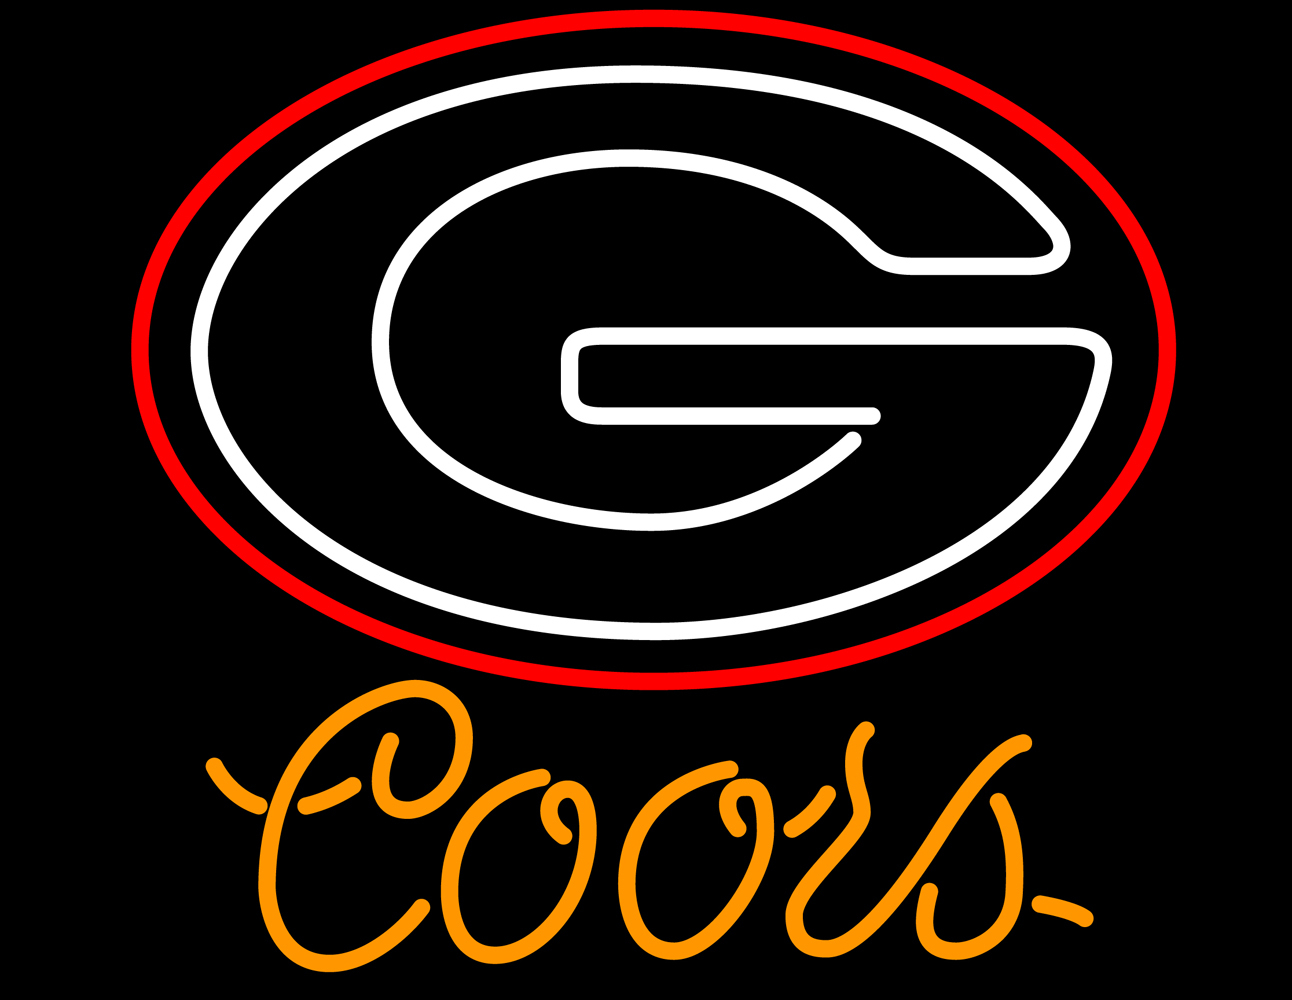 Coors ncaa university of georgia neon sign 16  x 16